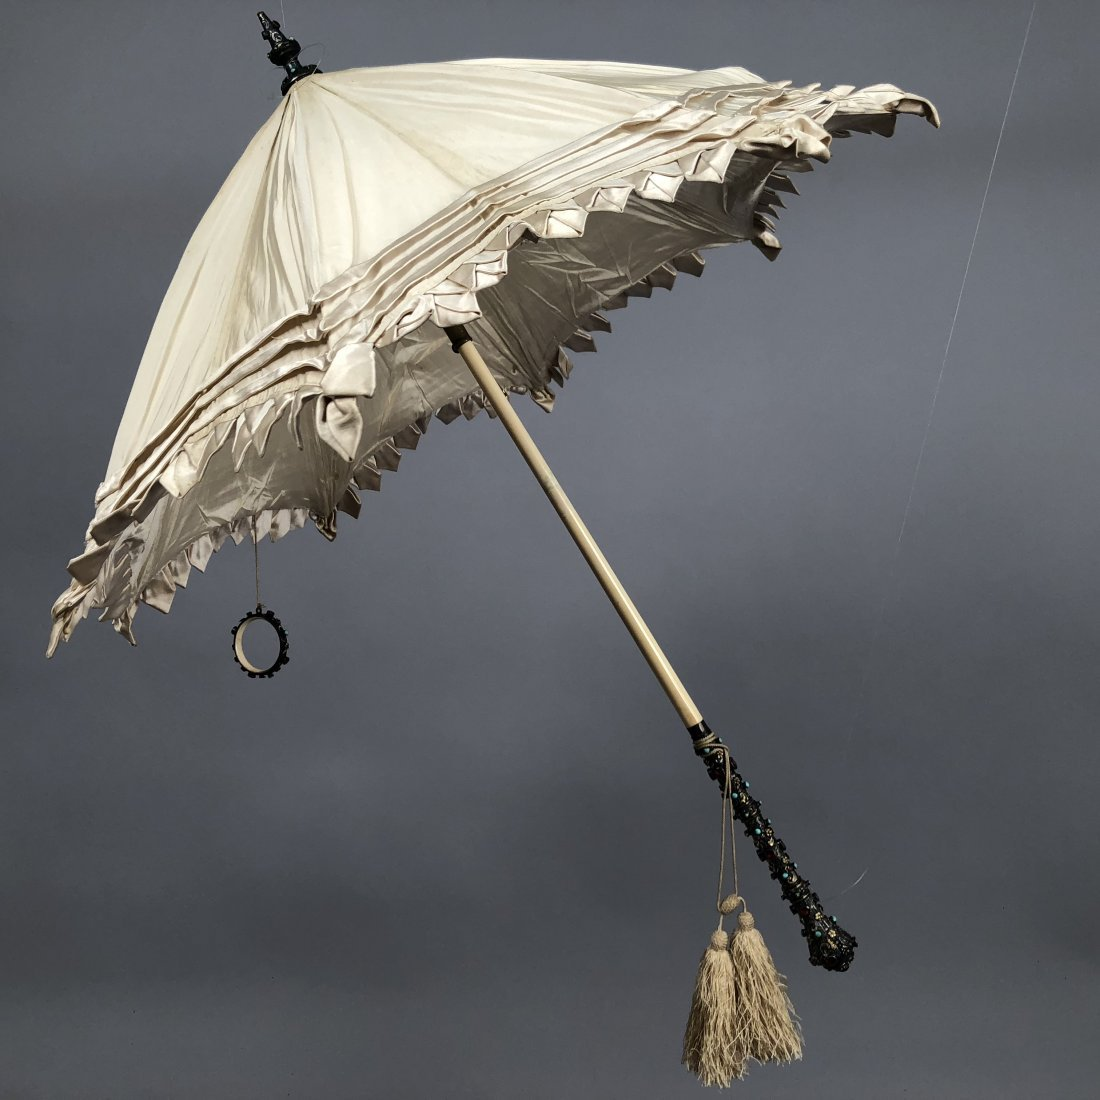 SILK PARASOL with JEWELED and IVORY HANDLE, 1850 - 1860